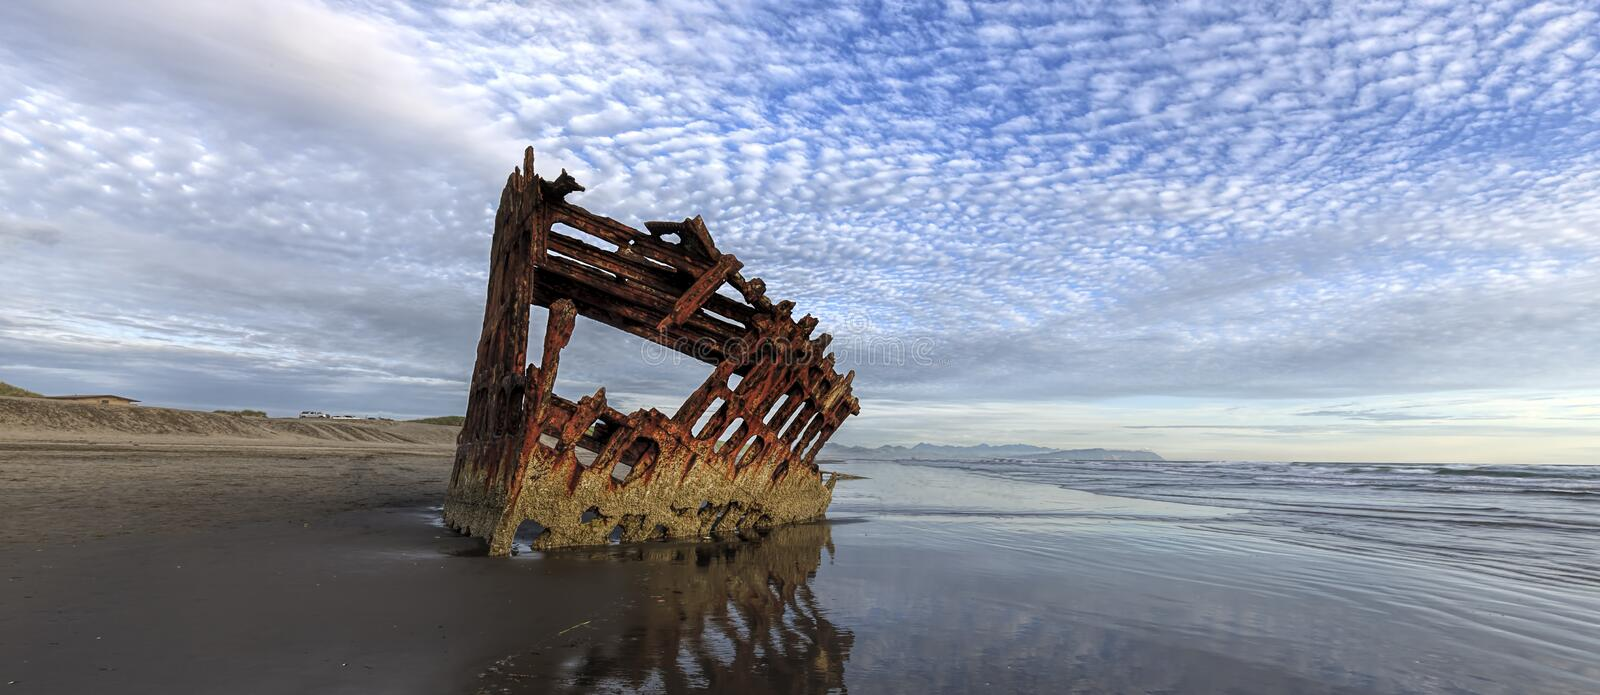 Panorama of Peter Iredale shipwreck in Oregon. stock images